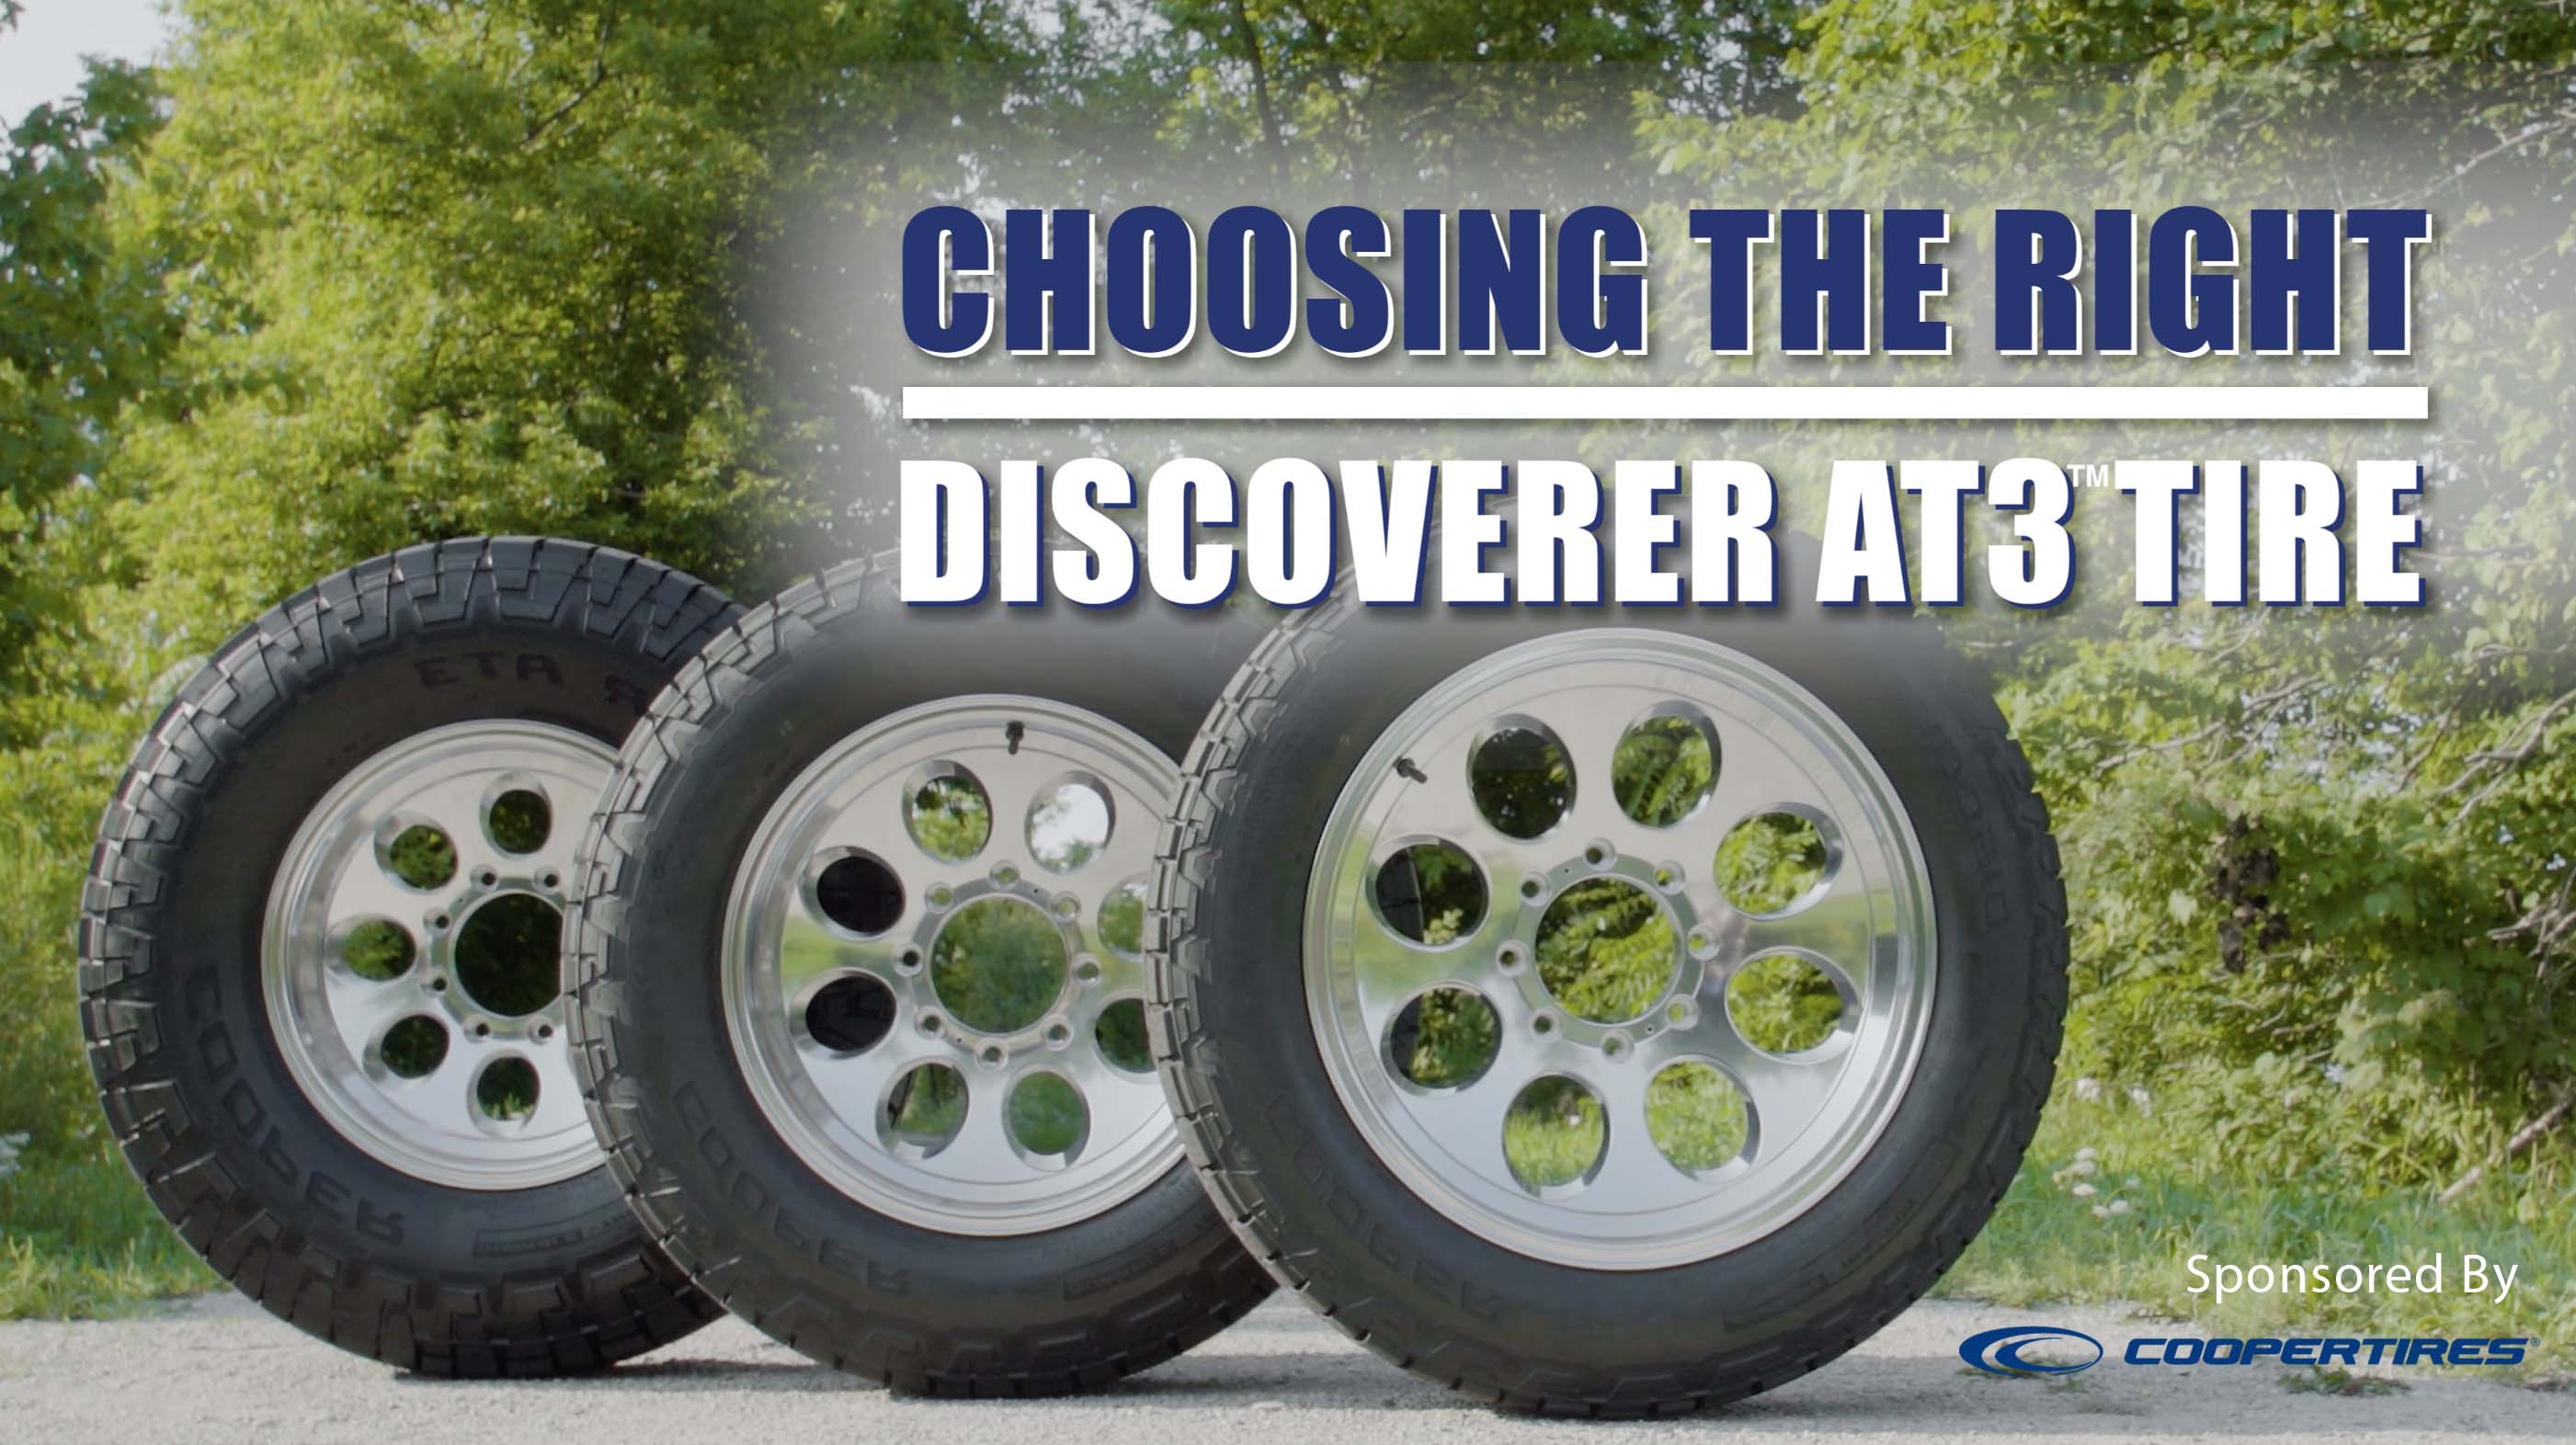 The truck and SUV market is booming, and Cooper Tires is expanding its line-up to meet that growing demand by transforming its popular and proven Discoverer AT3 tire into a full line of products, with the AT3 4S™, AT3 LT™,